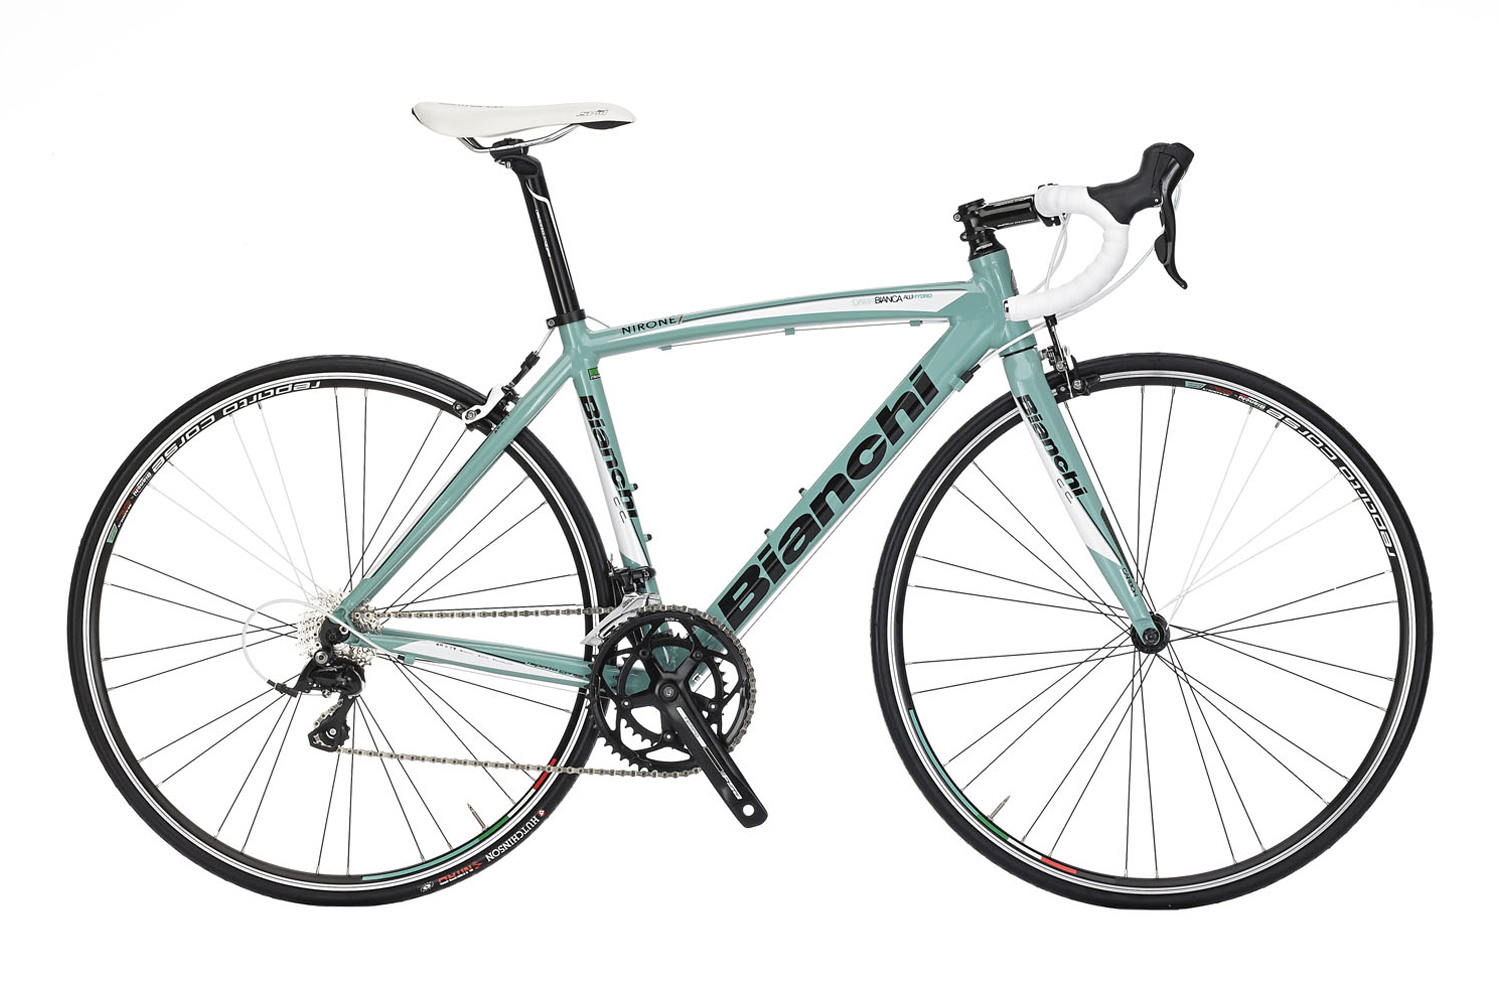 Bianchi Via Nirone Dama Sora - Sale Price $899.99 (Regular Price $969.99)Triple-butted hydroformed aluminum frame, carbon fork, Shimano Sora 2 x 9 speed shifting, Reparto Corse caliper brakes.Available Sizes: 46cm